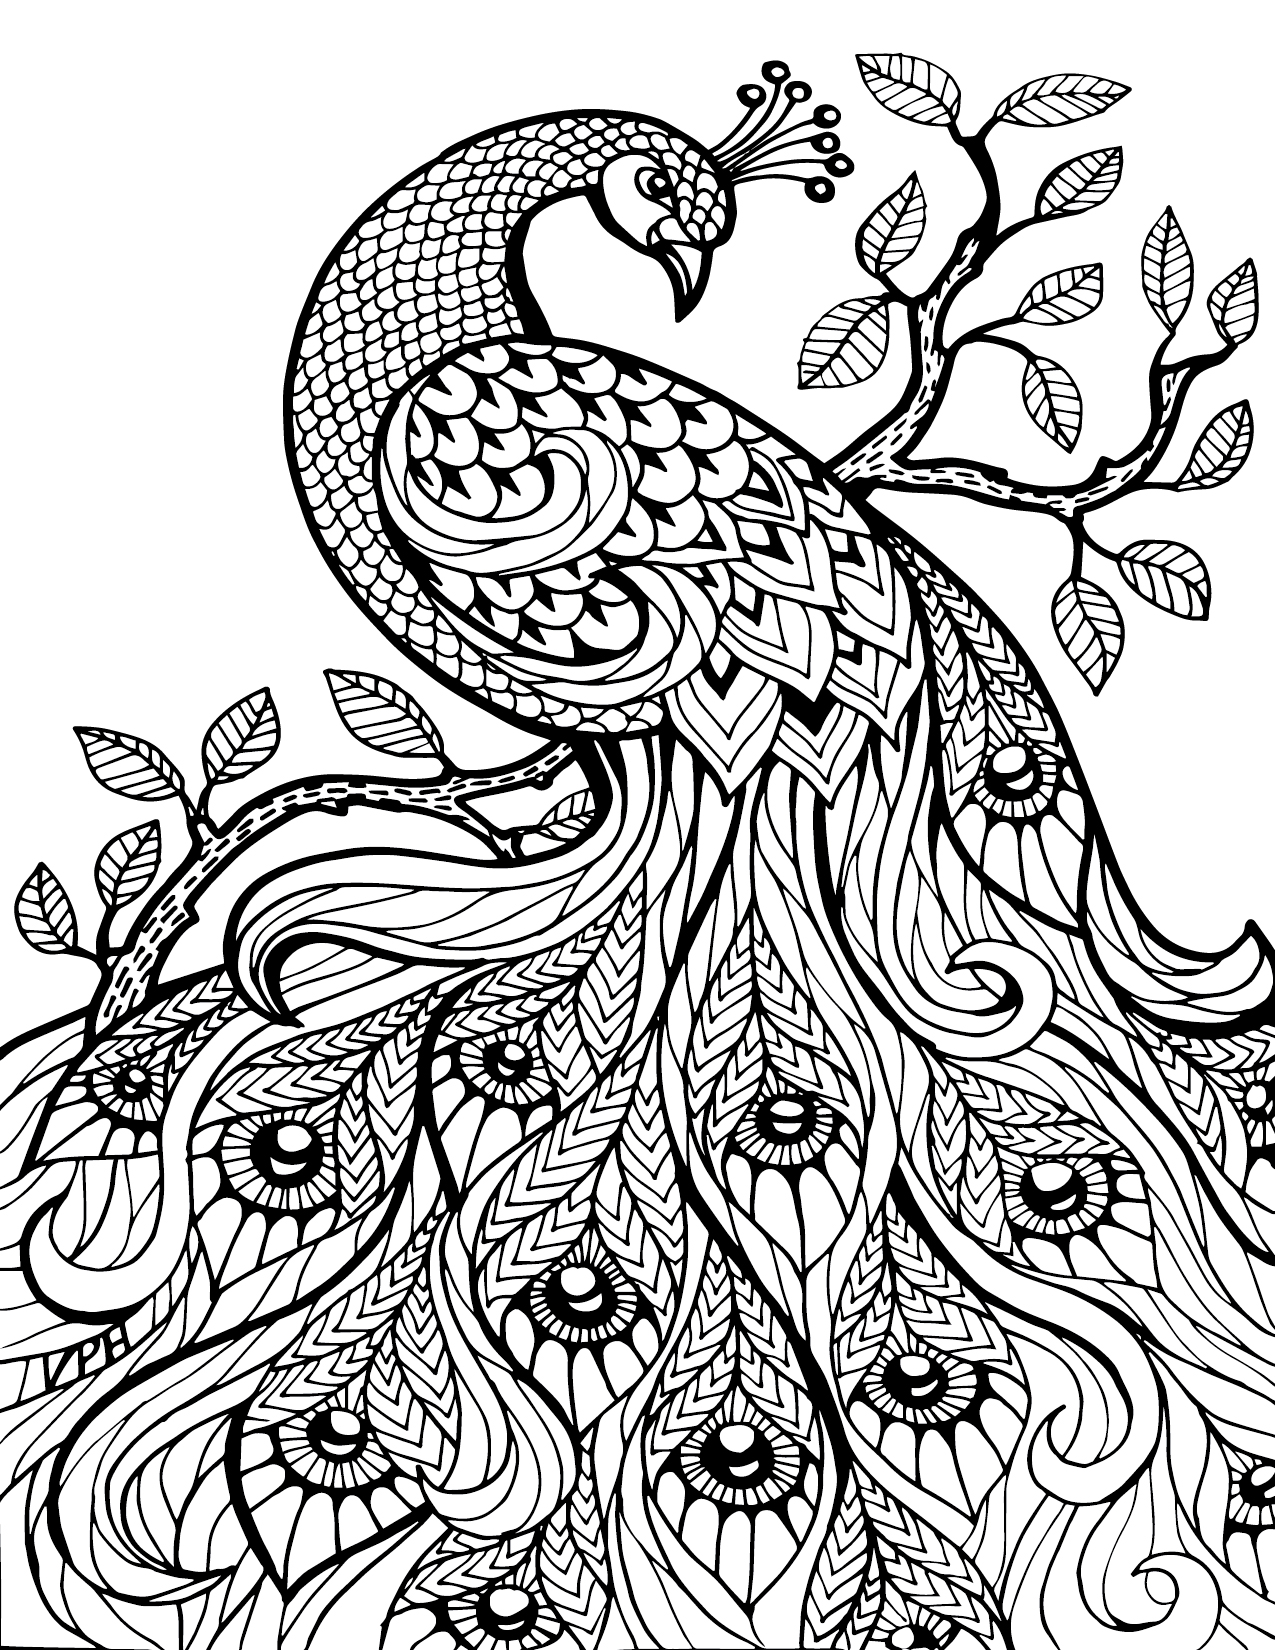 pattern animal coloring pages - Coloring Pages Download Free